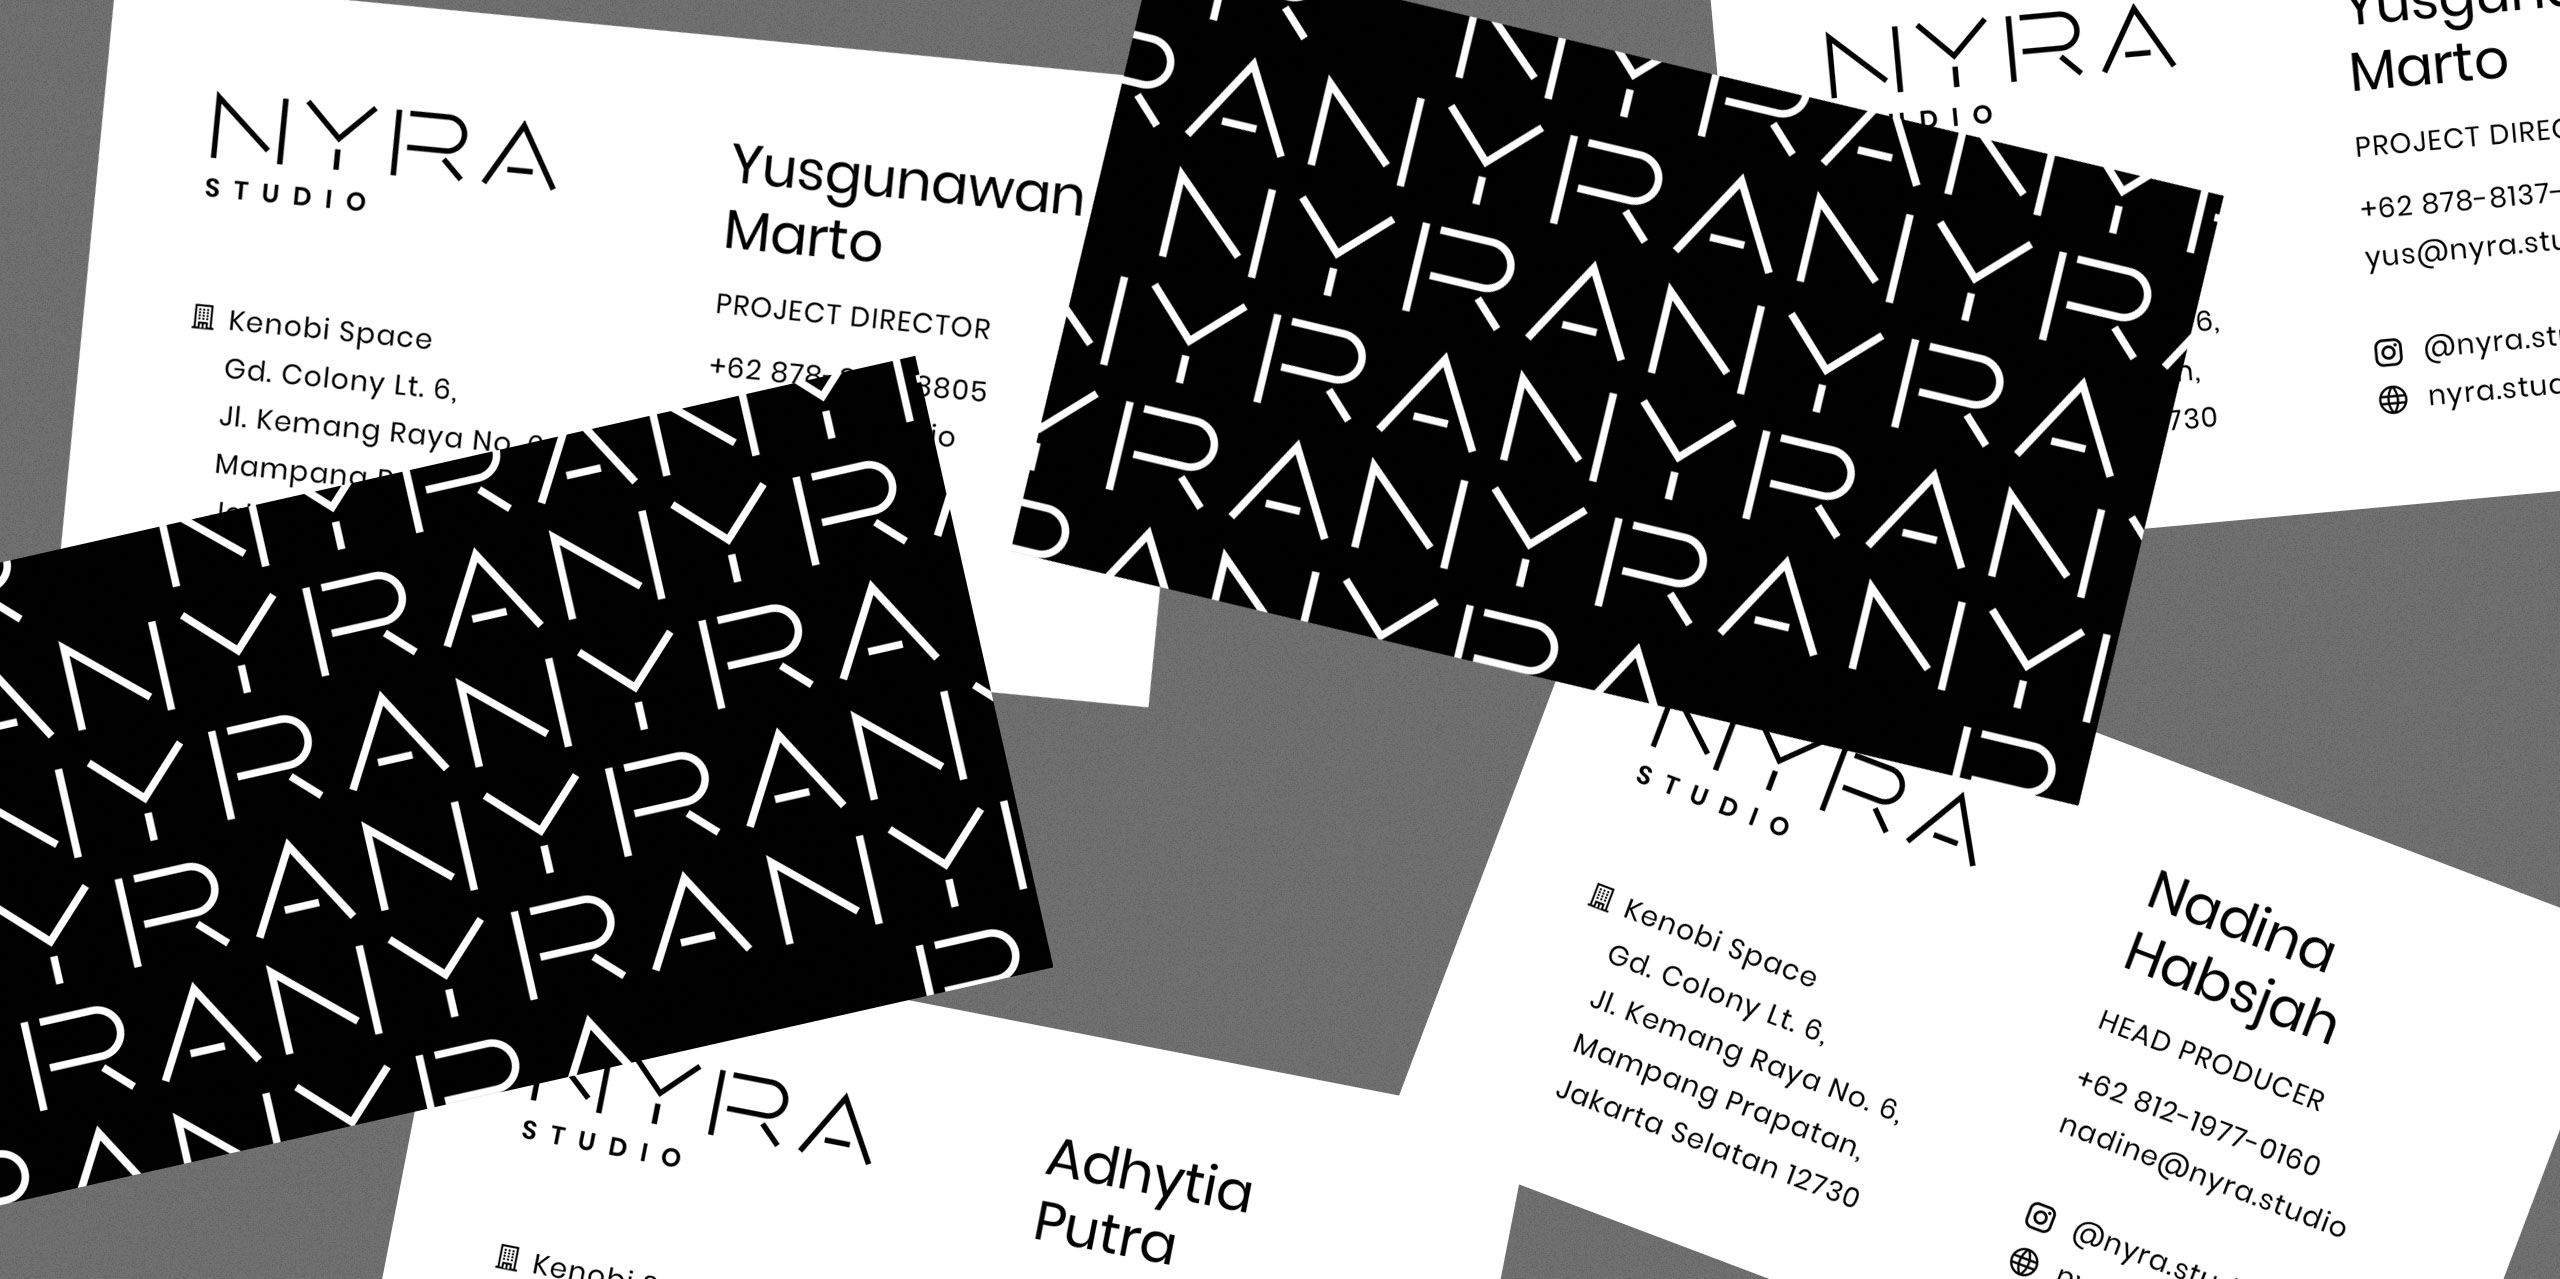 A pile of NYRA business cards, showing the back for some cards with a black background and white NYRA pattern print, and the front with NYRA members contact information